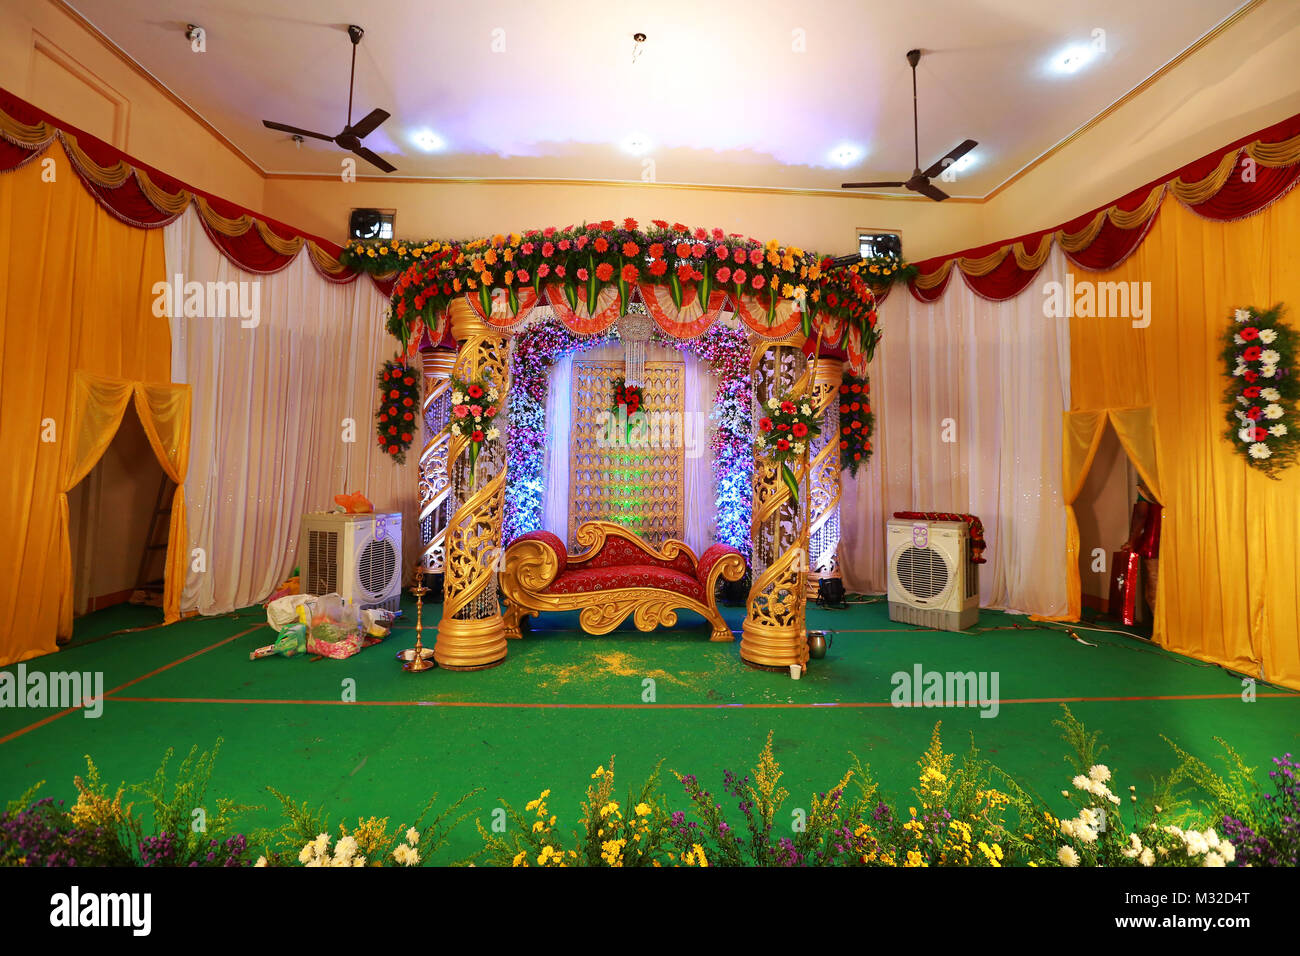 Wedding Stage Stock Photos & Wedding Stage Stock Images - Alamy